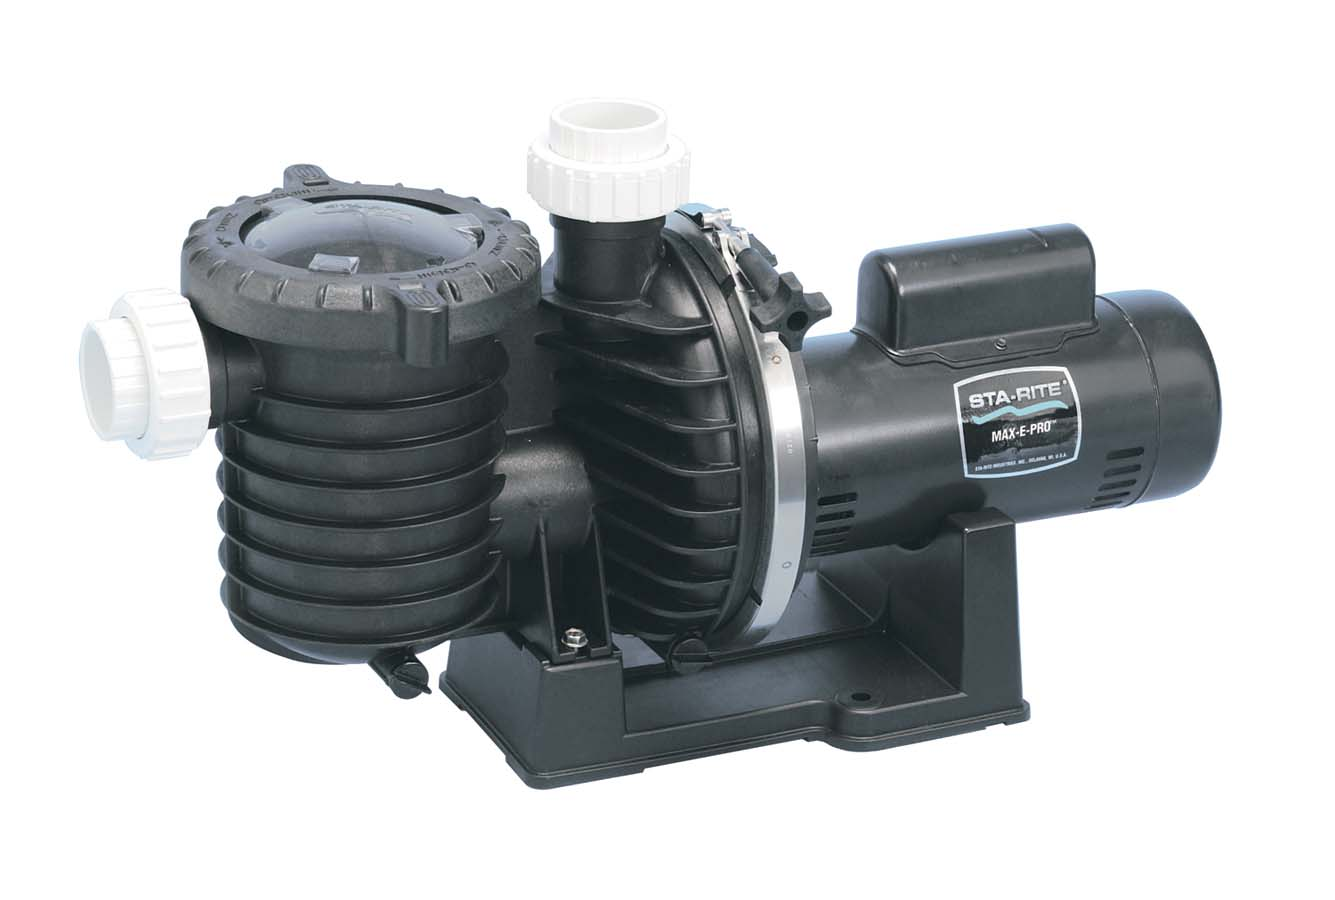 Sta-Rite Max-E-Pro Pool Pump 2-Speed 1.5HP